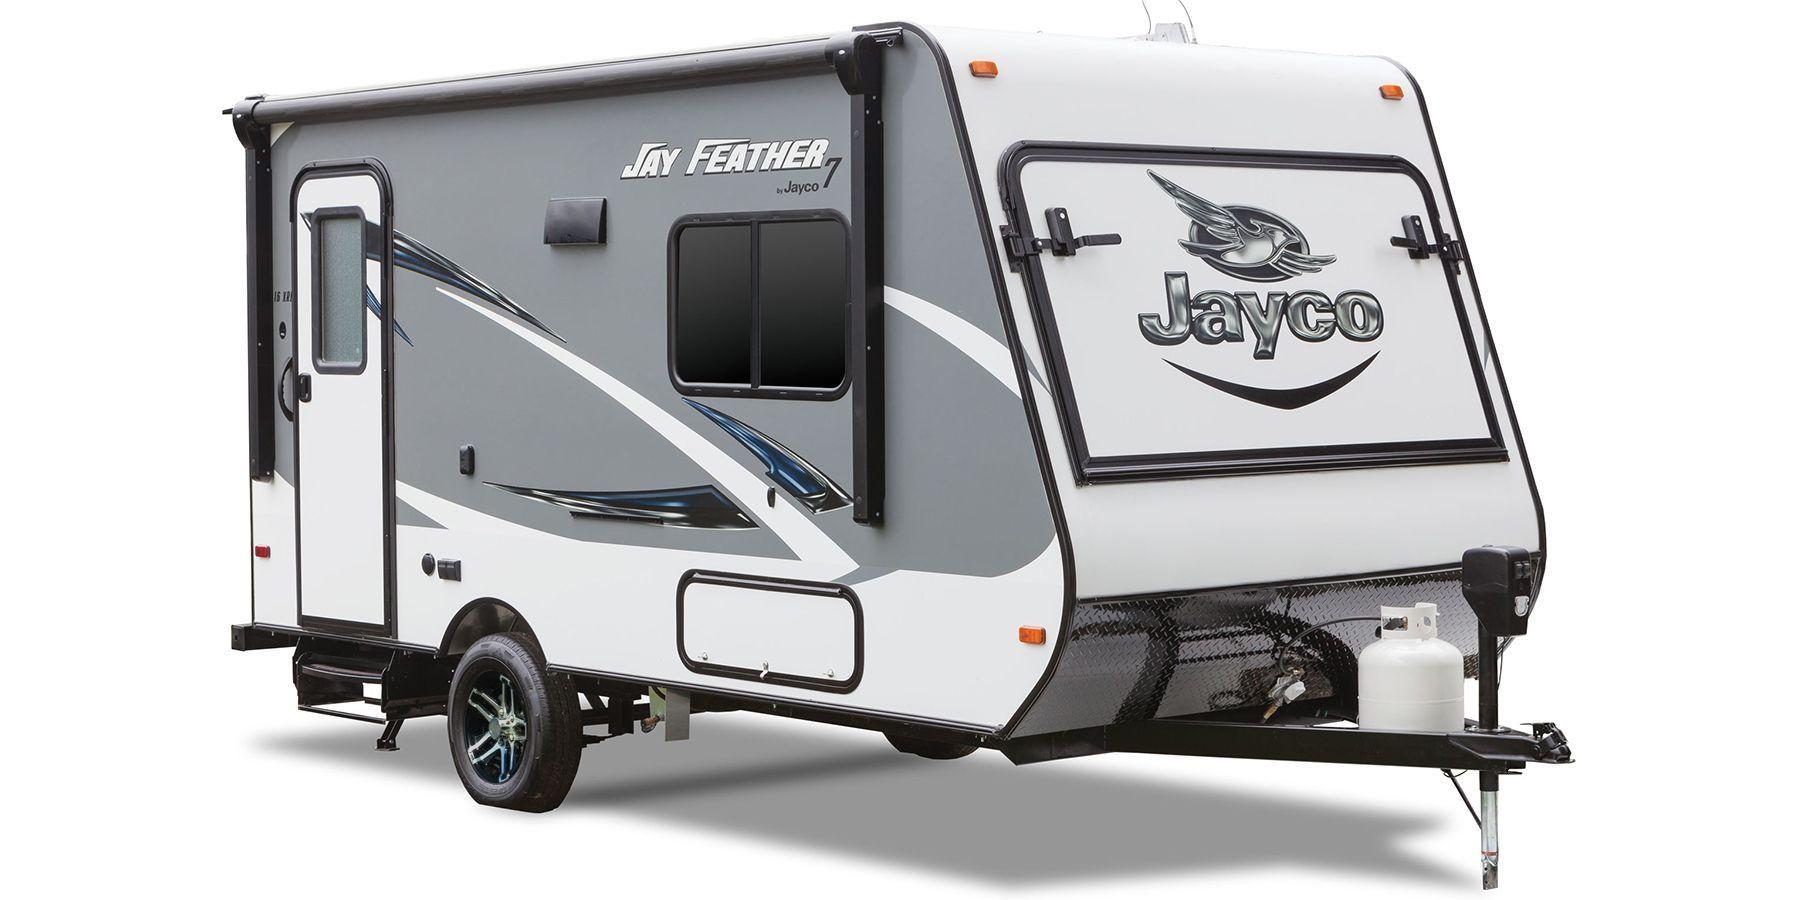 ... Feather 7 travel trailer models are towable by most minivans,  crossovers and SUVs—consult with your automobile manufacturer or owner's  manual.